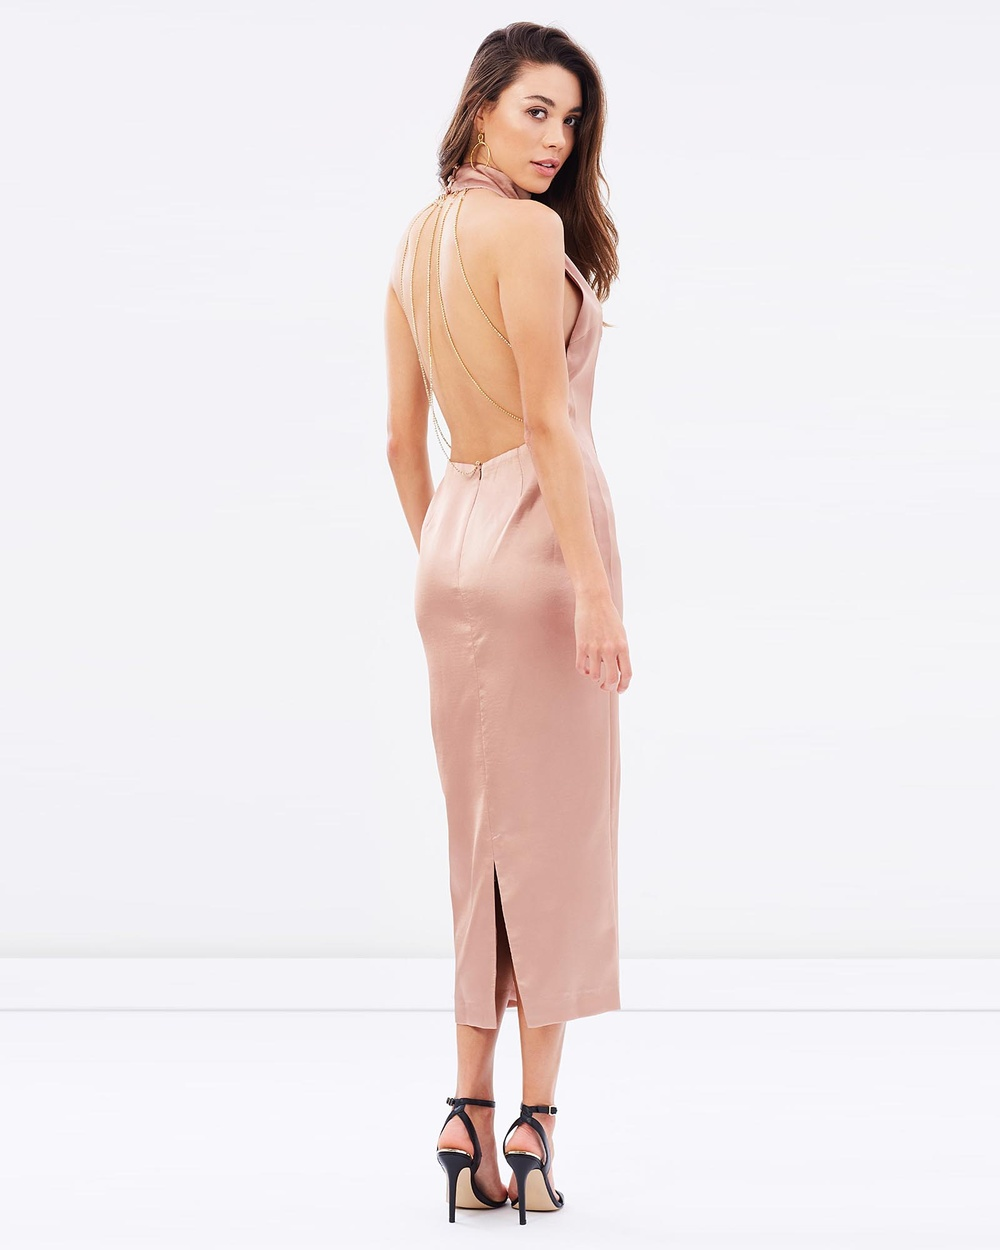 BSSA Kendall Dress Dresses Bronze Kendall Dress